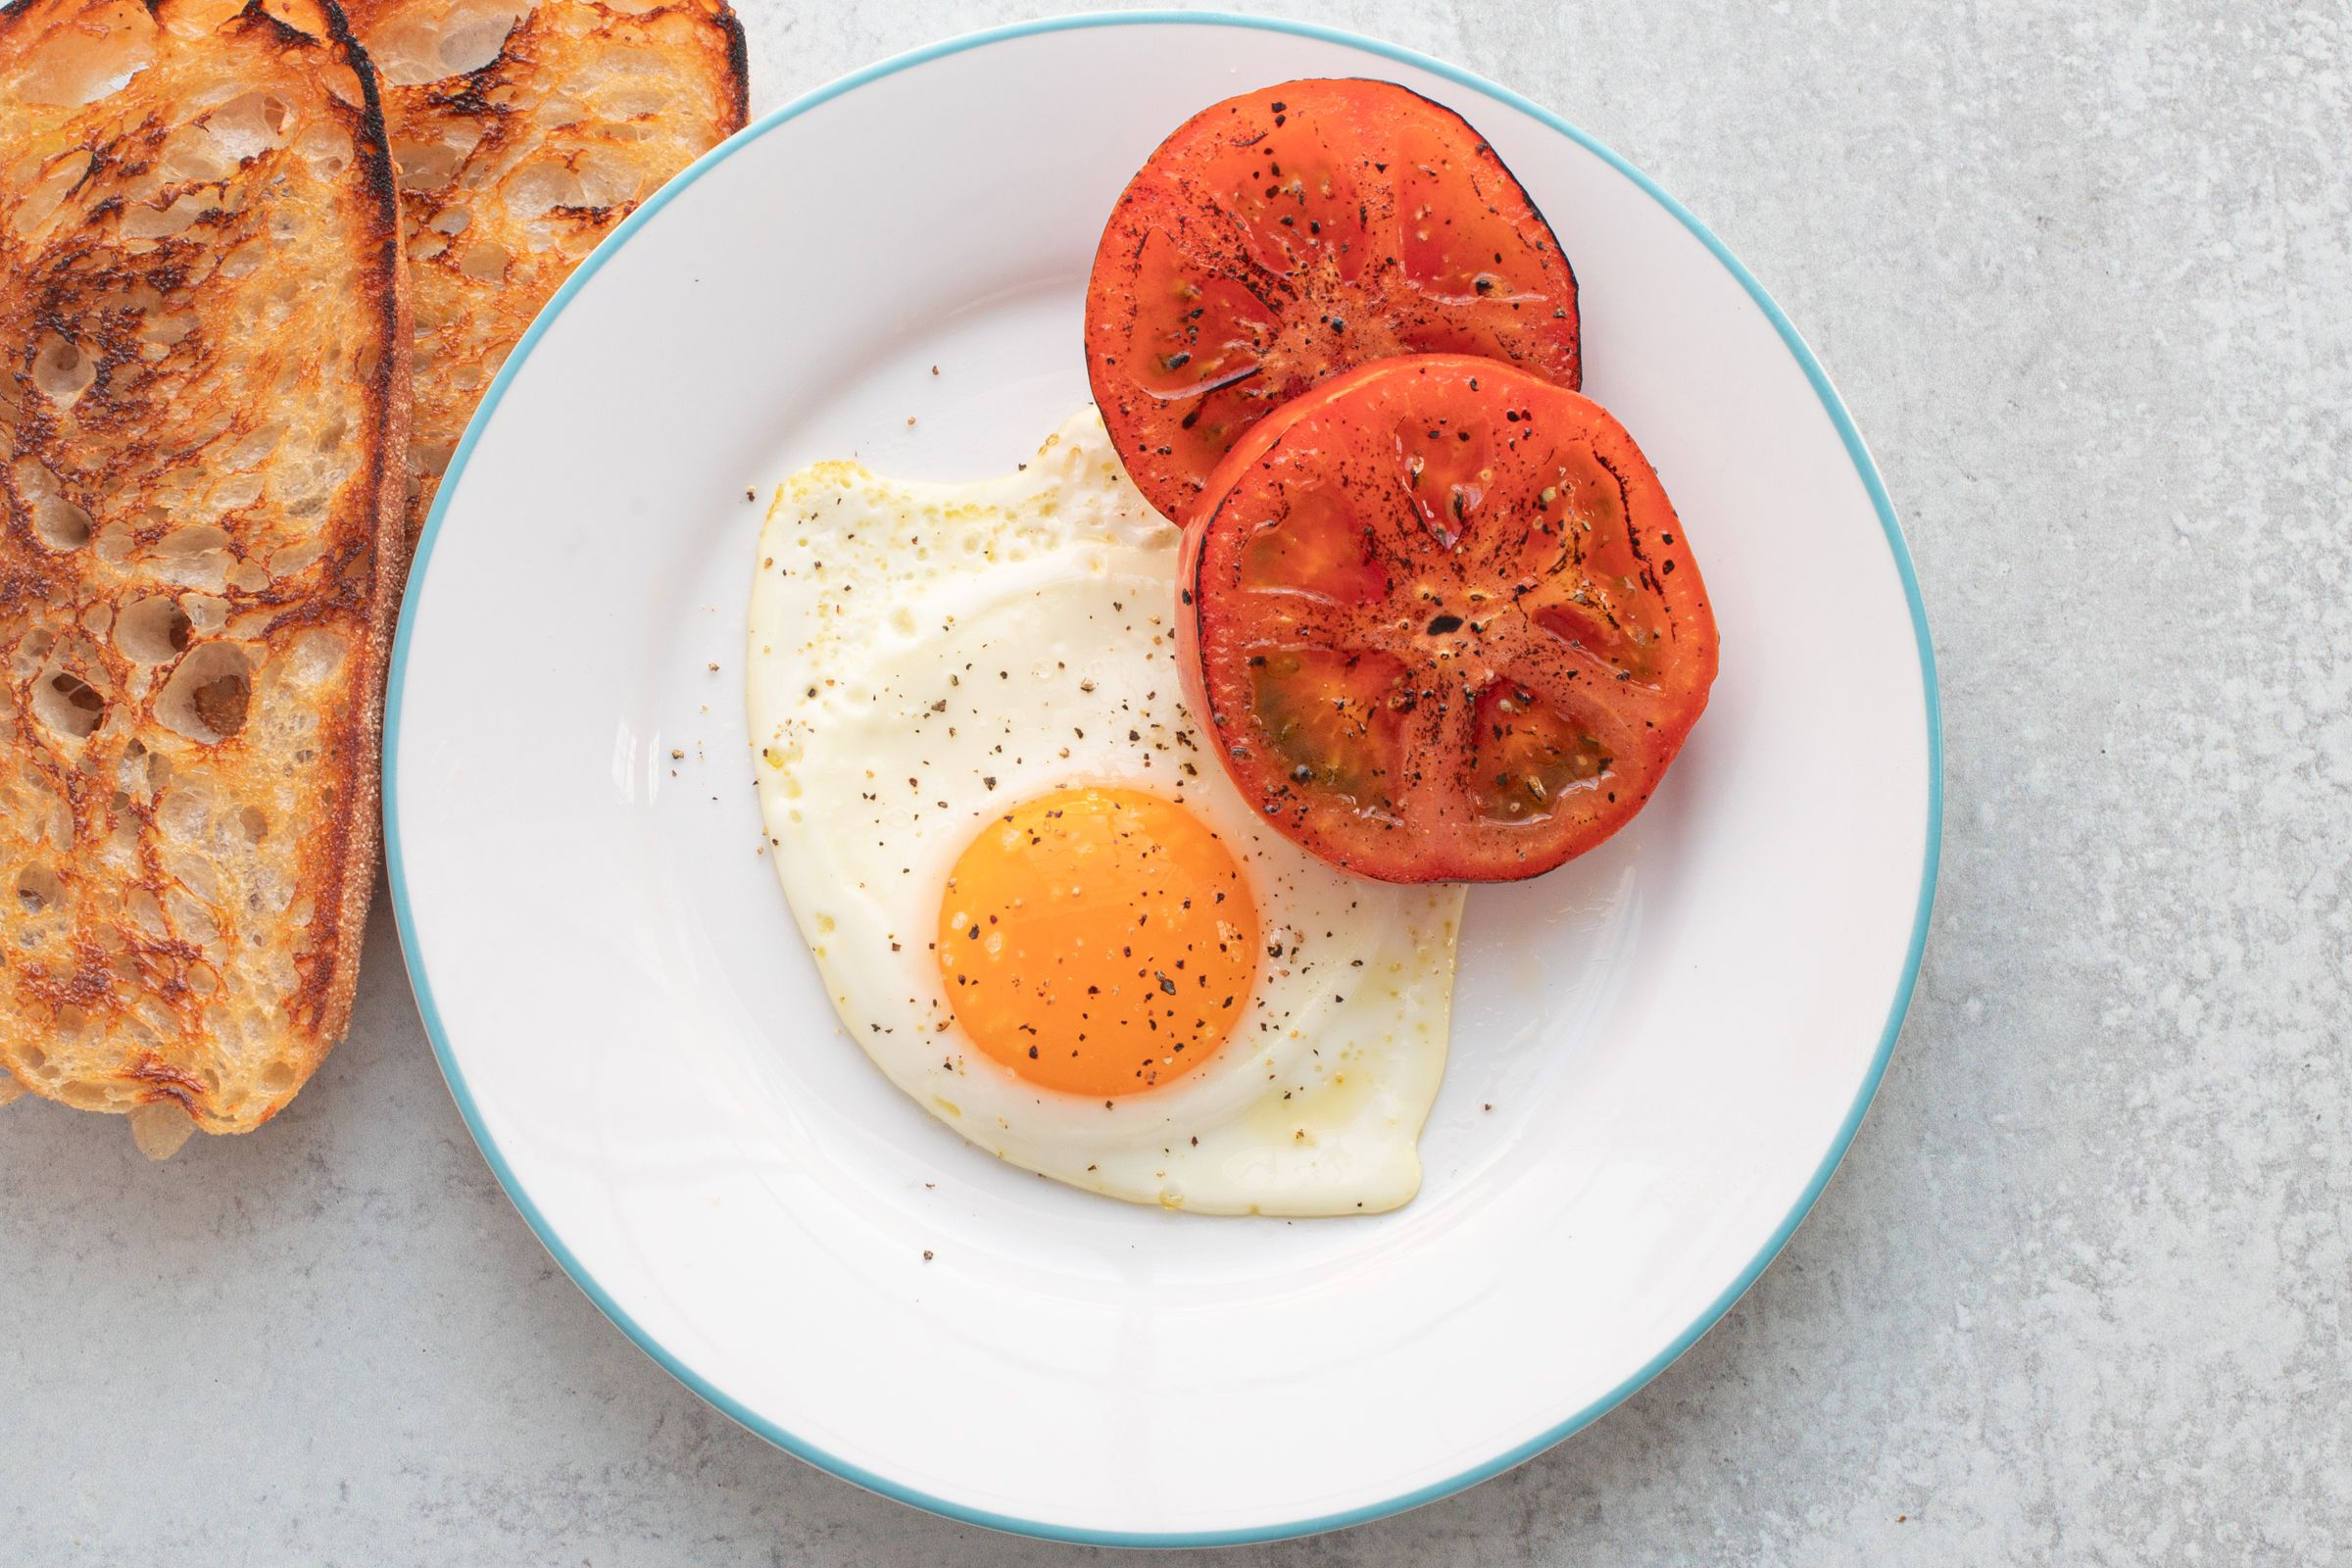 Make Perfect Sunny-Side Up Eggs Every Time